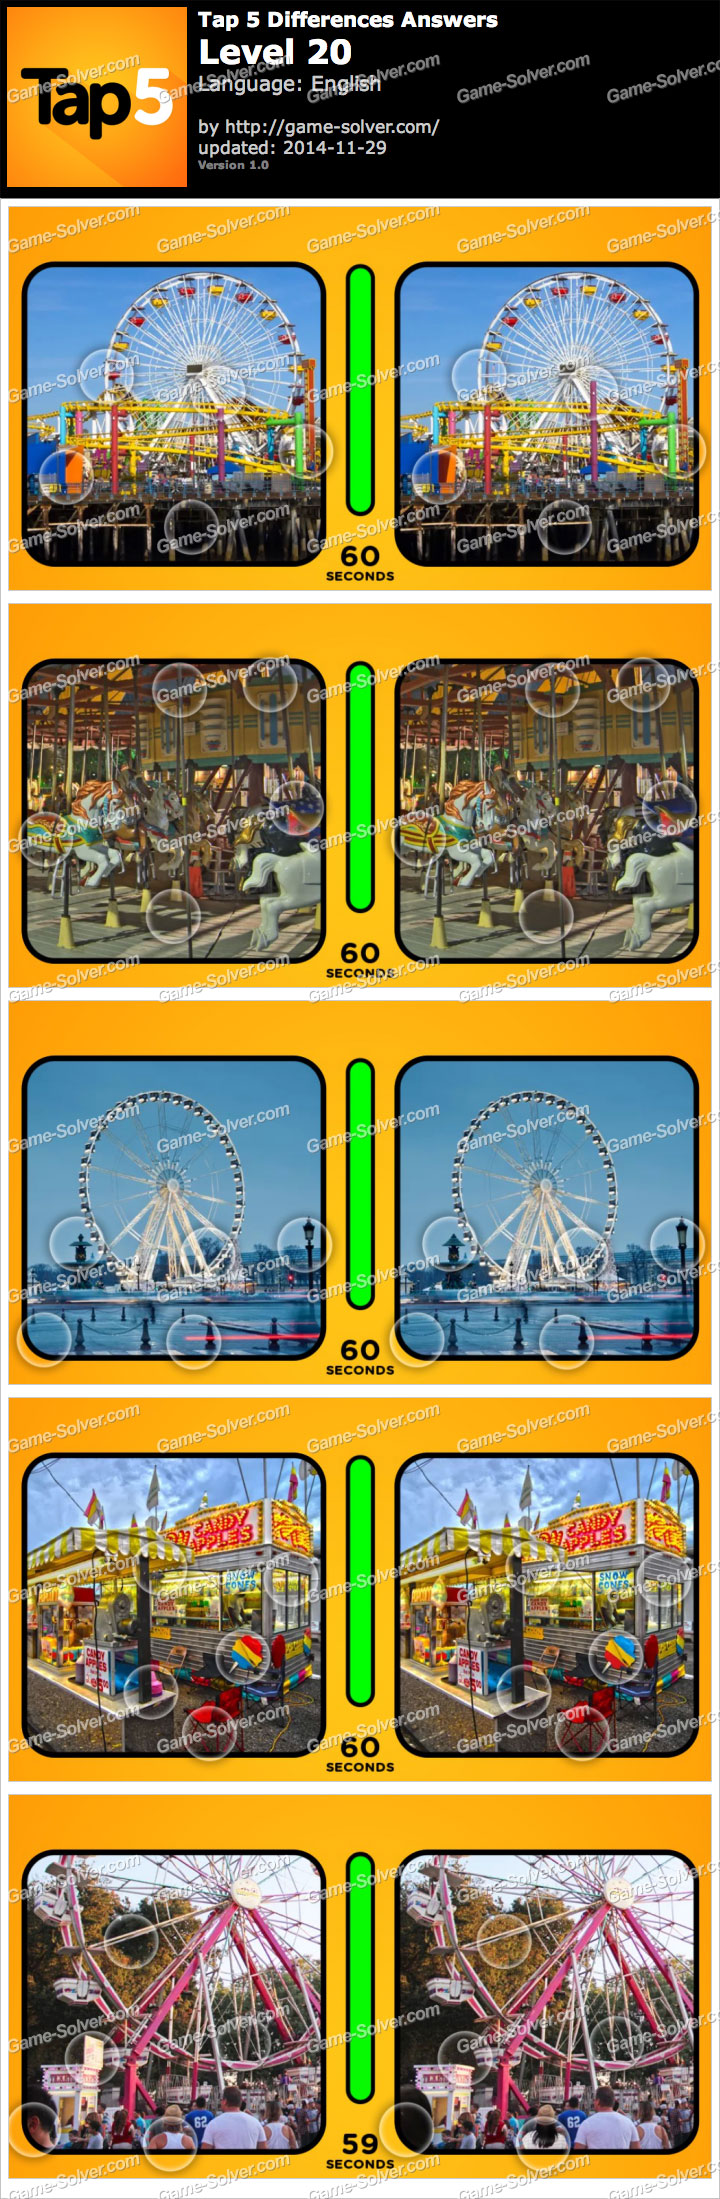 Tap 5 Differences Level 20